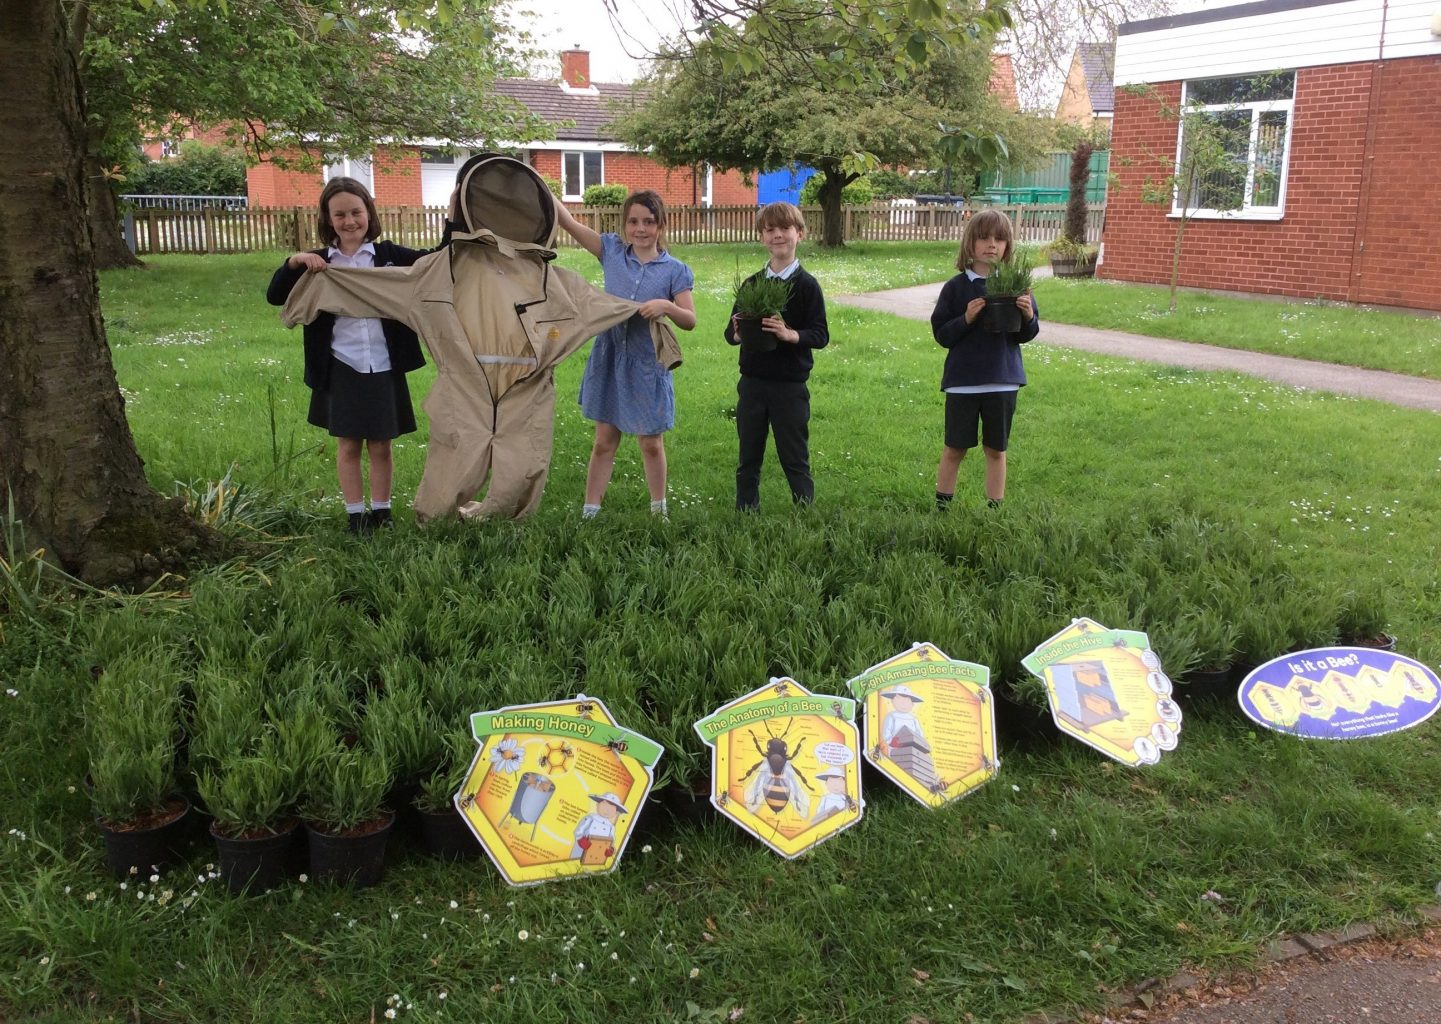 Supporting National Children's Gardening Week